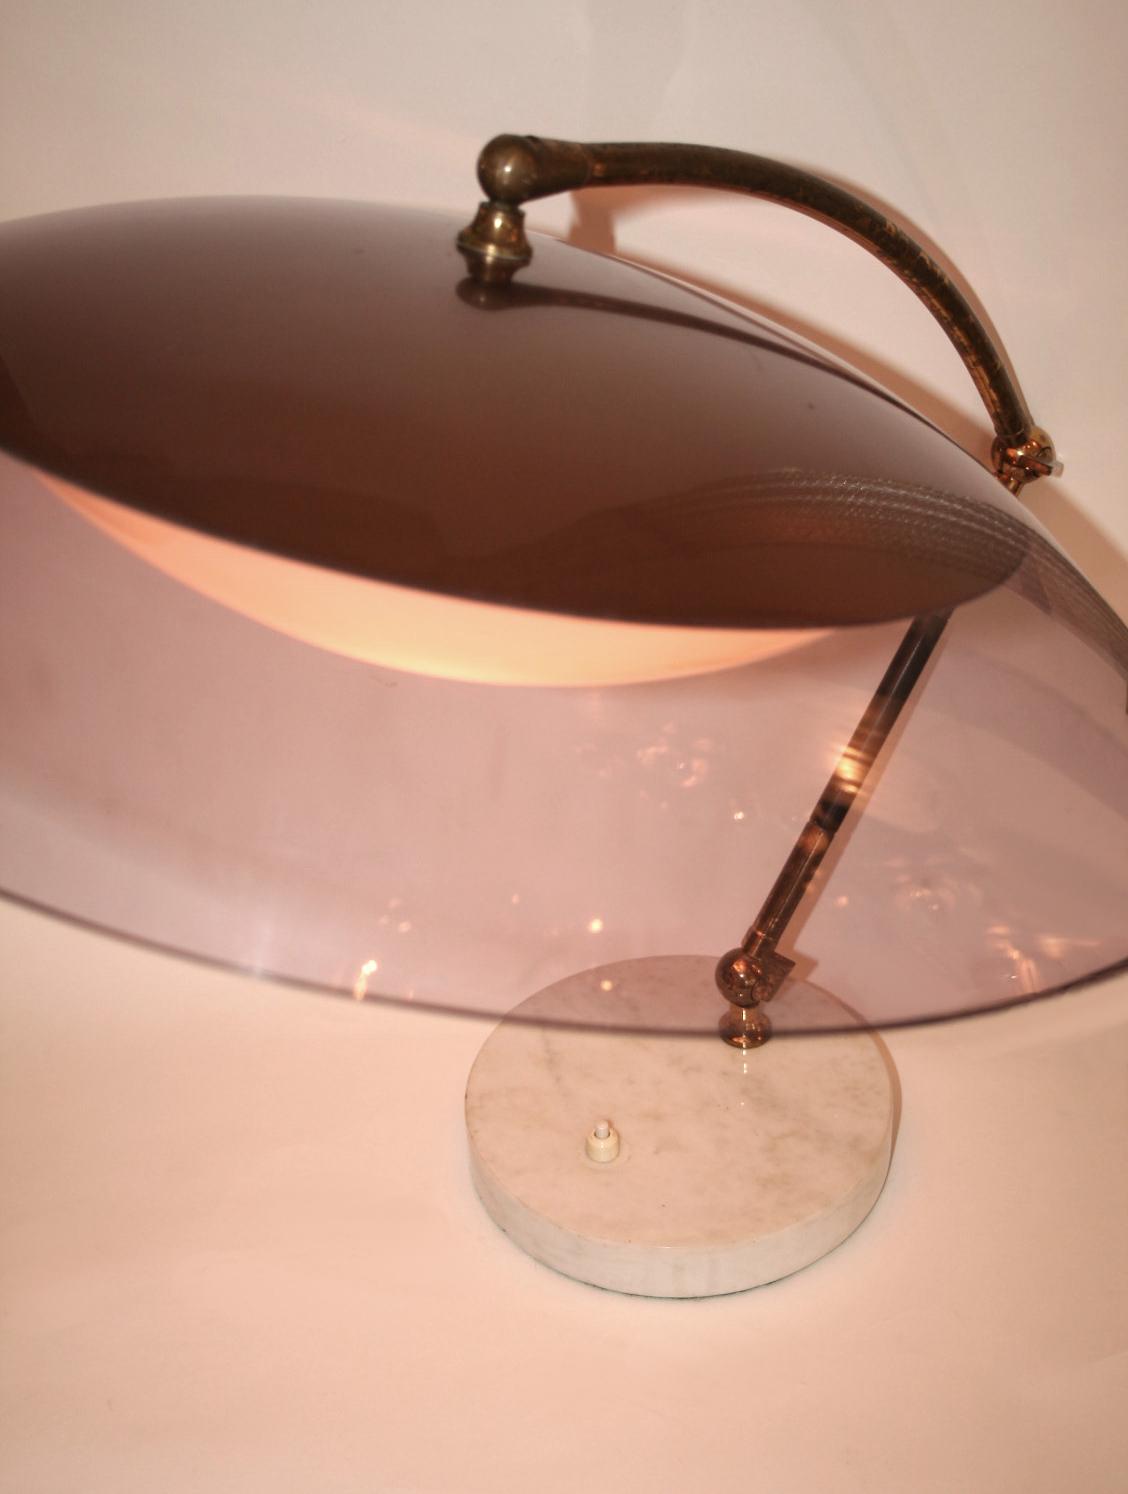 Valerie Wade Lt629 1950S Italian Articulated Dome Lamp Stilux 03